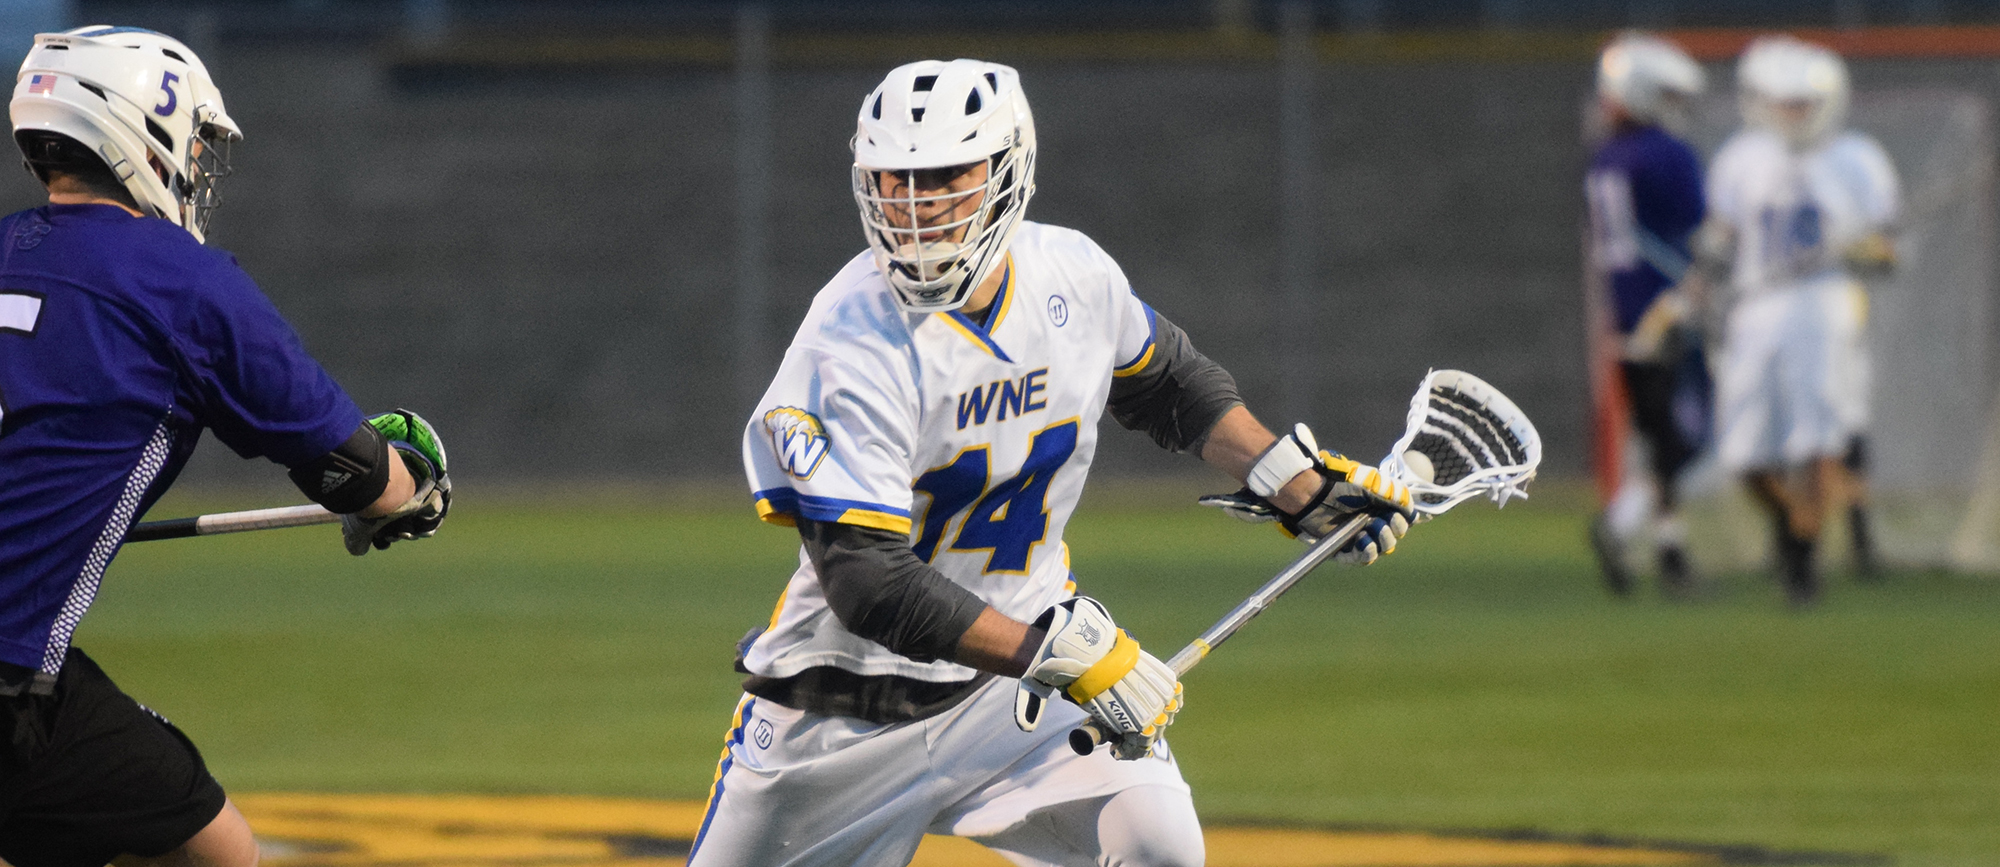 Sophomore Nick Gamba's goal late in the fourth quarter was the difference in Western New England's 11-9 victory over Wentworth on Wednesday night. (Photo by Rachael Margossian)